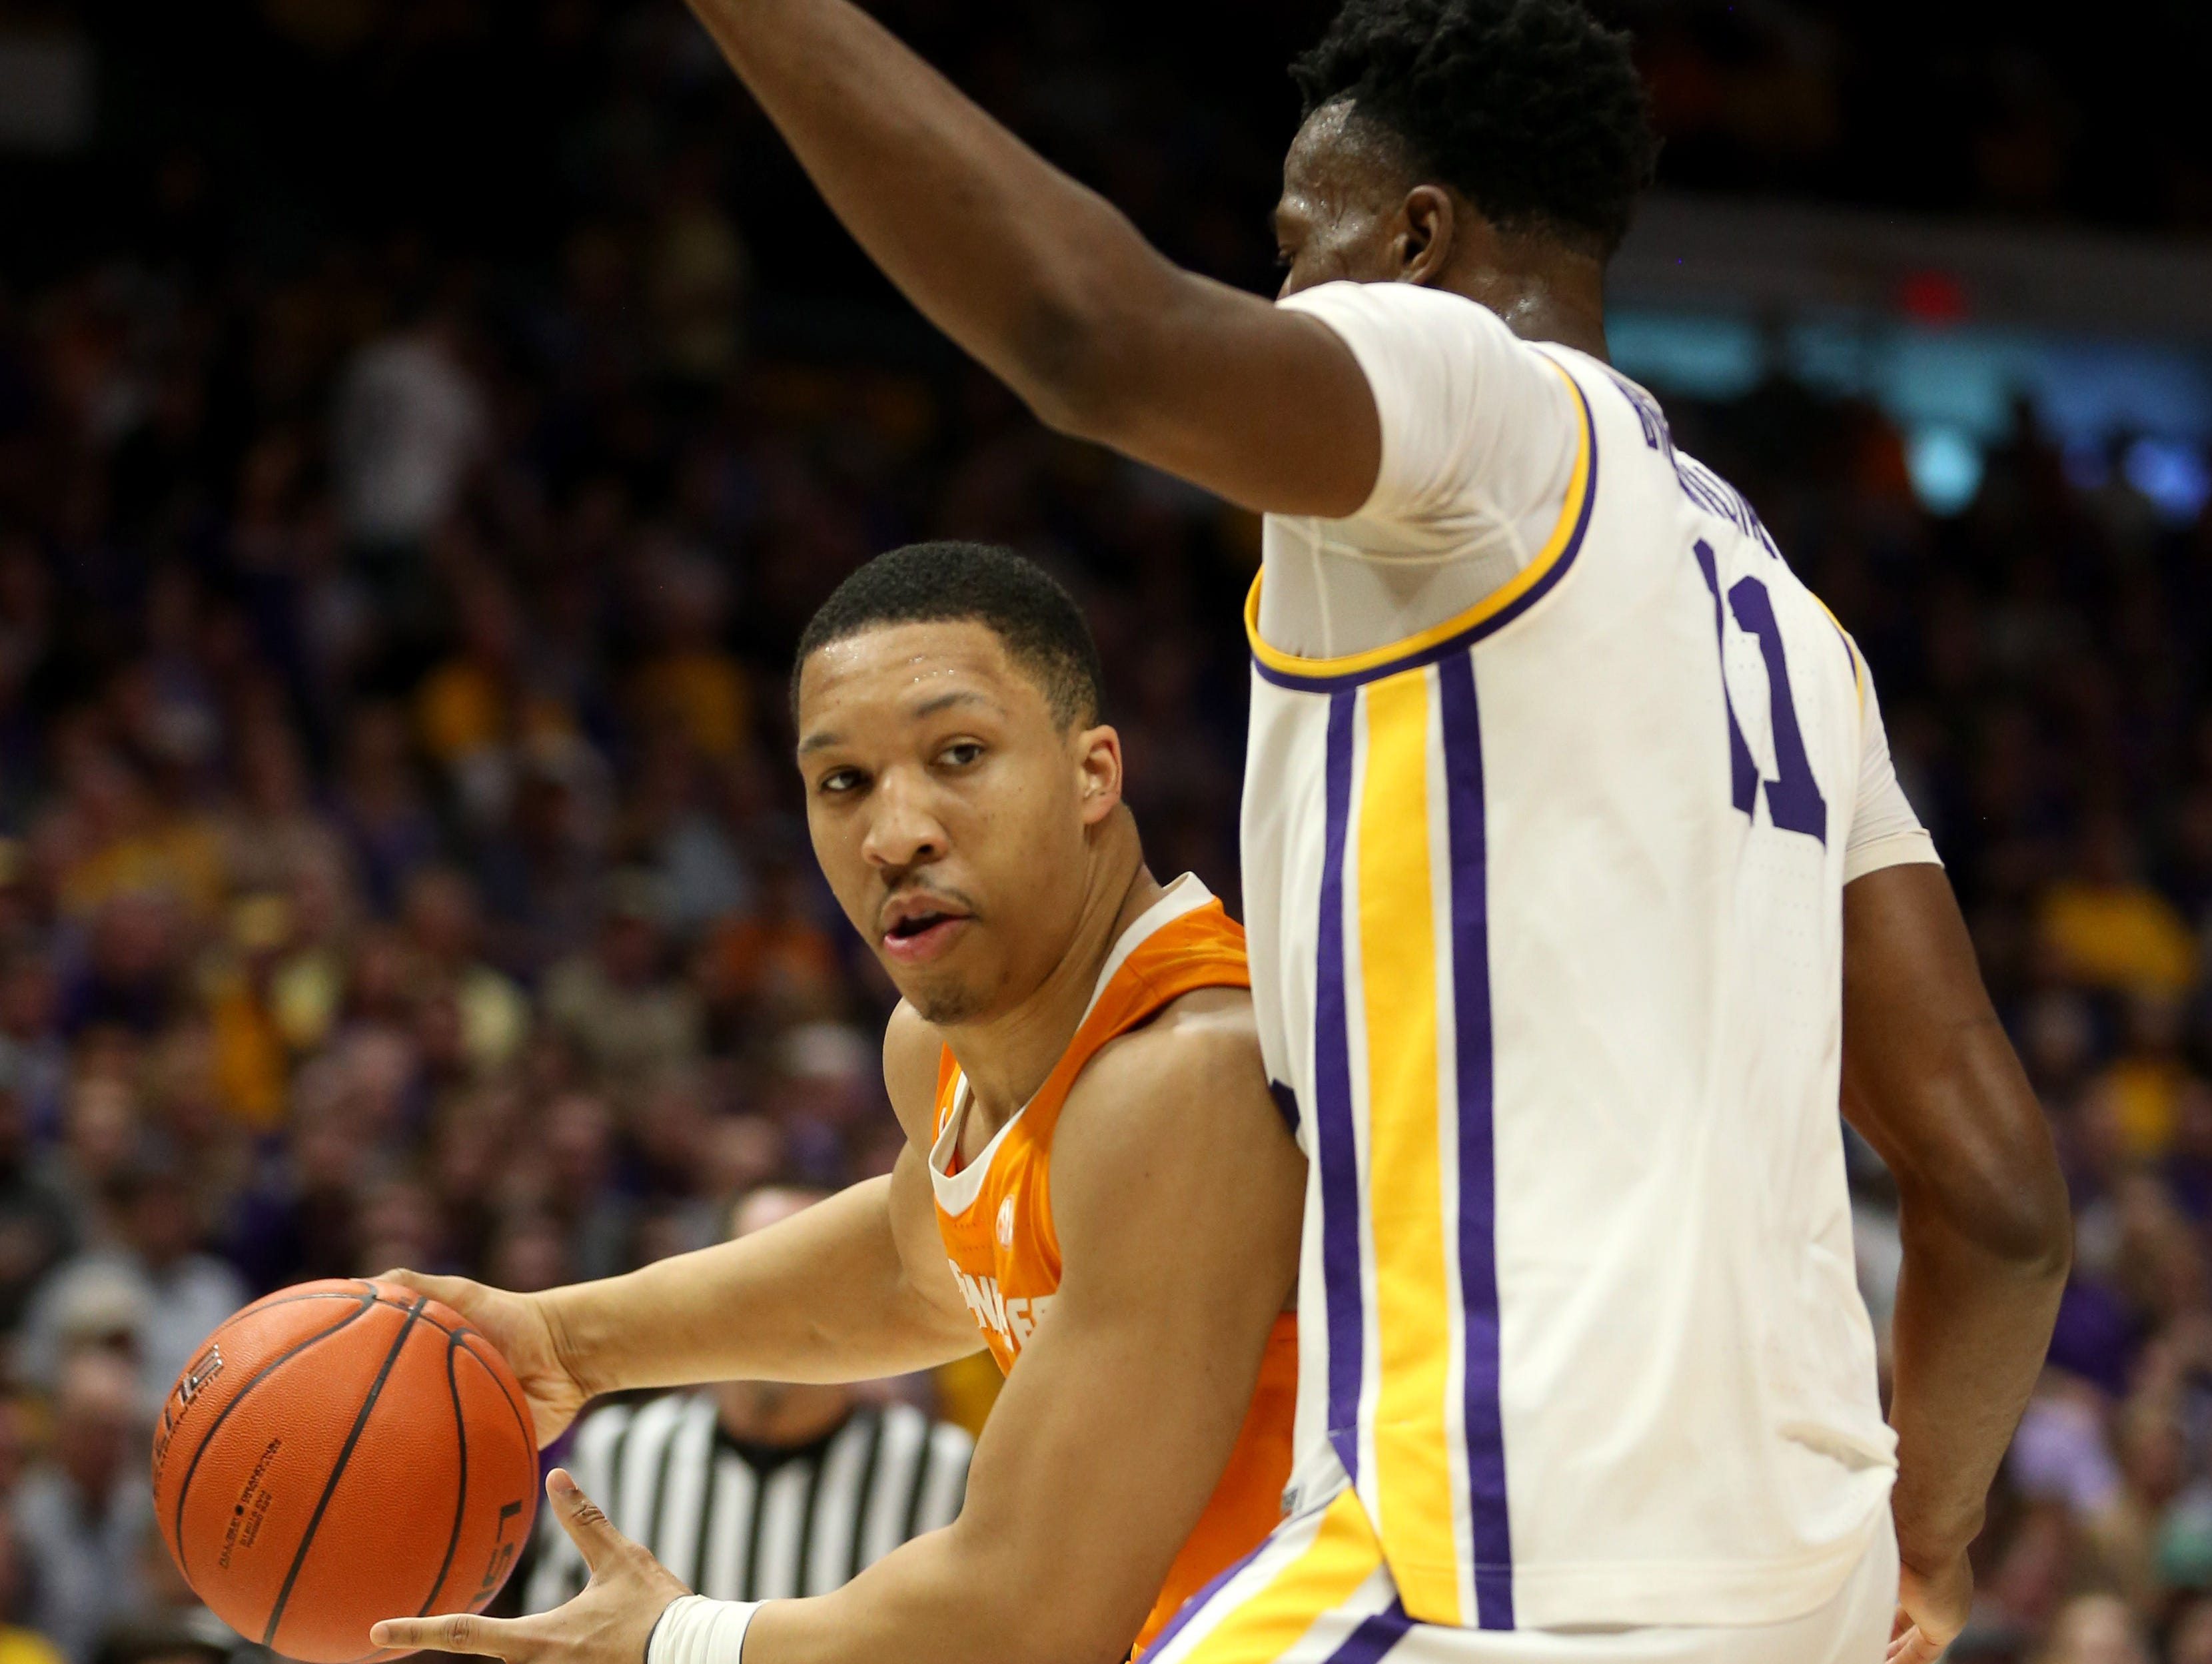 Feb 23, 2019; Baton Rouge, LA, USA; Tennessee Volunteers forward Grant Williams (2) is defended by LSU Tigers forward Kavell Bigby-Williams (11) in the first half at the Maravich Assembly Center. Mandatory Credit: Chuck Cook-USA TODAY Sports